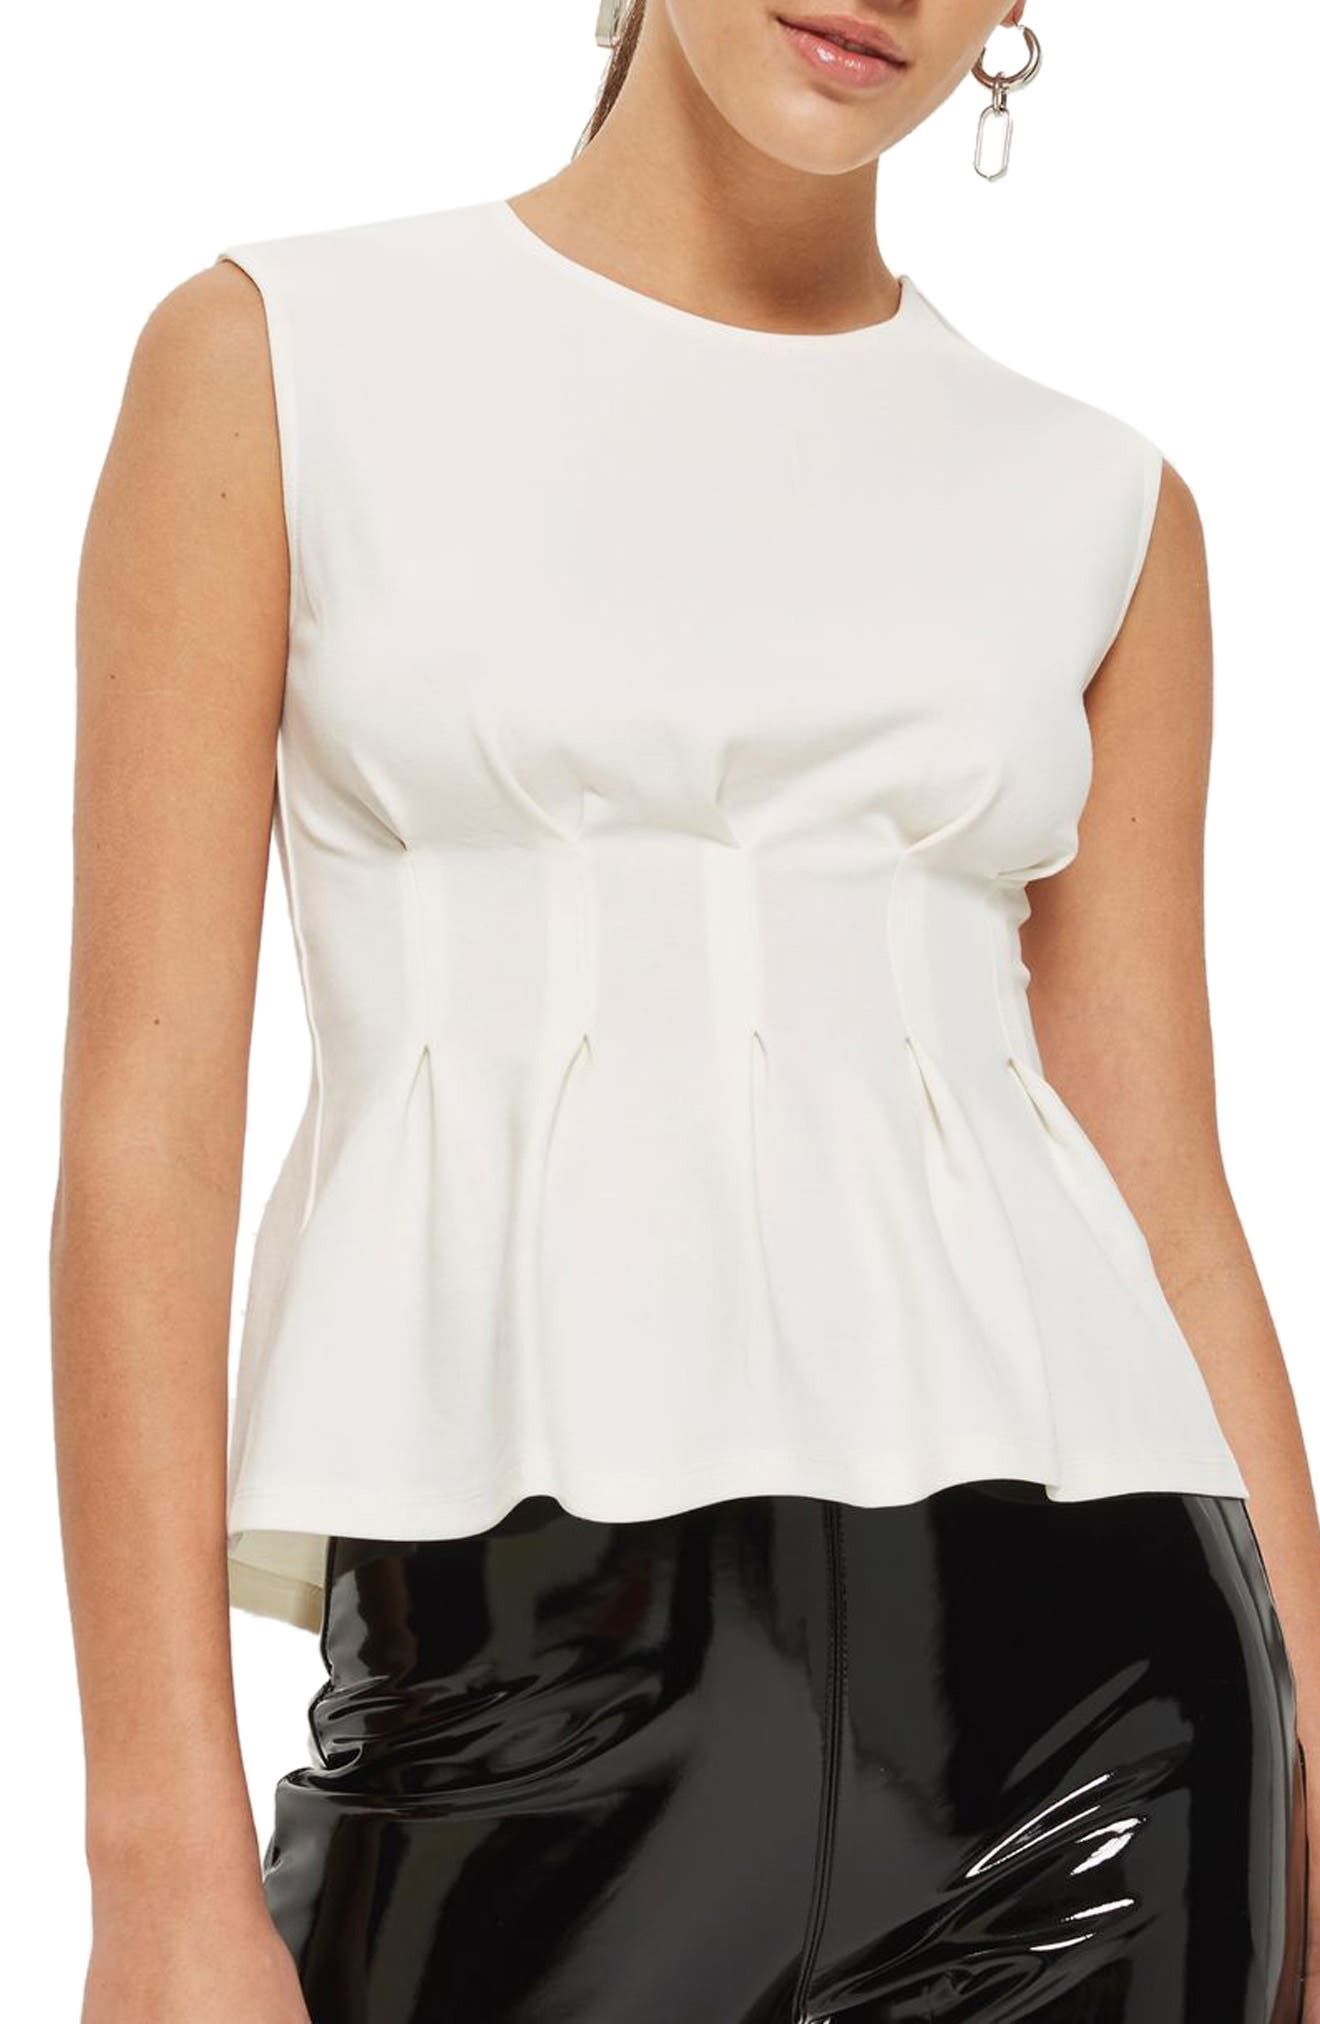 Cinched Waist Sleeveless Blouse,                             Main thumbnail 1, color,                             900